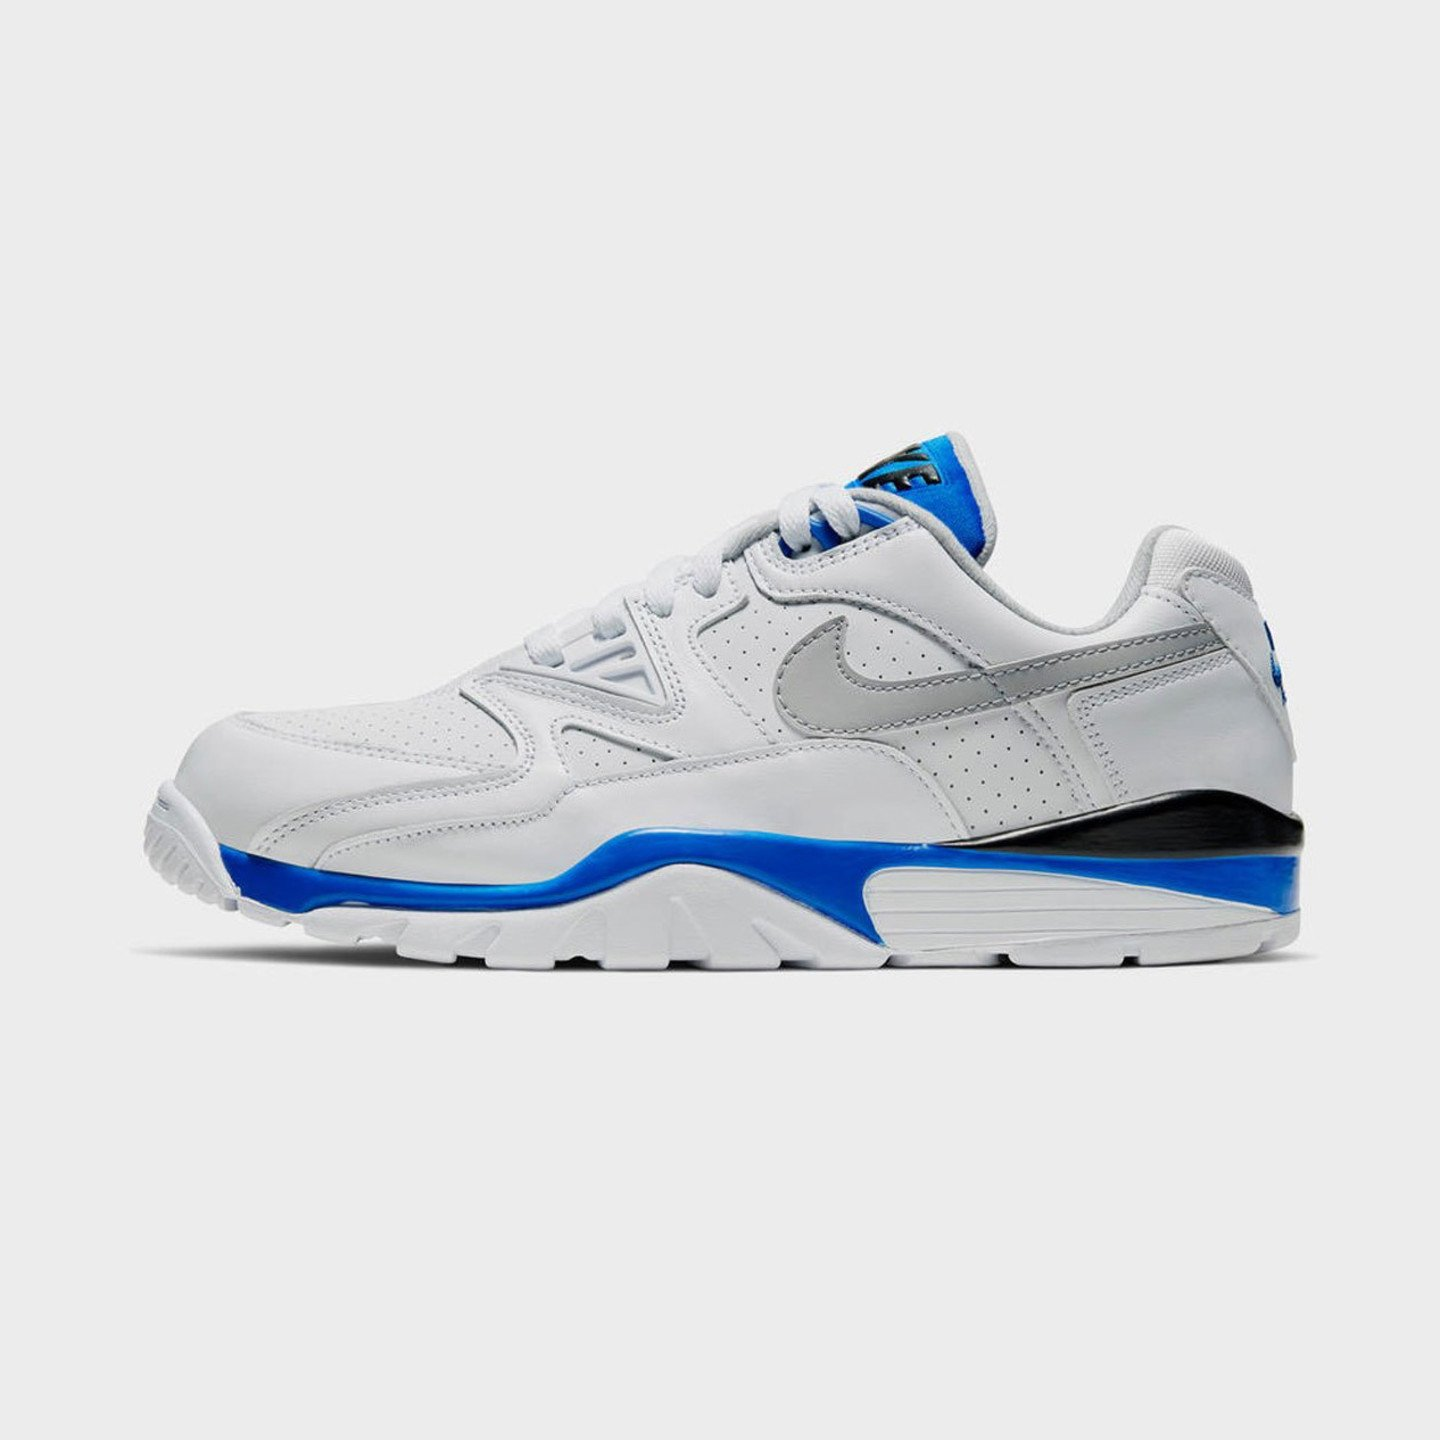 Nike Air Cross Trainer 3 Low White / Lt Smoke /  Grey / Racer Blue / Black CJ8172-100